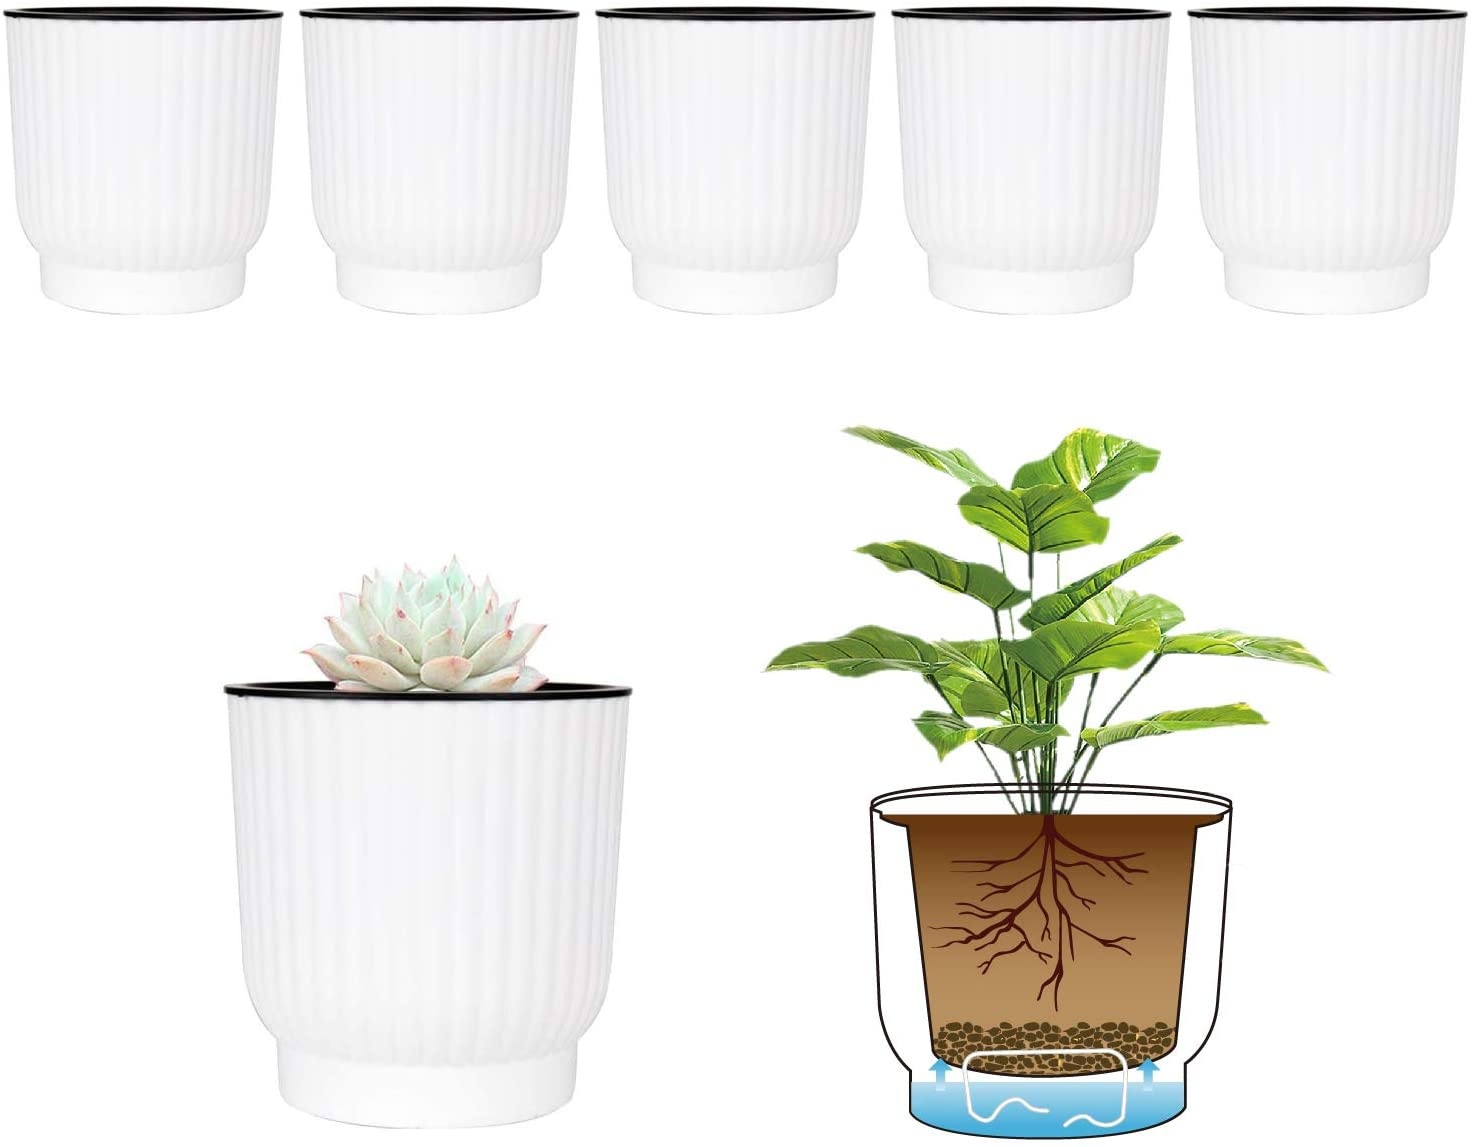 T4U 4.5 Inch Self Watering Pots for Indoor Plants, 6 Pack White Plastic Flower Pots for All House Plants, Flowers, African Violets